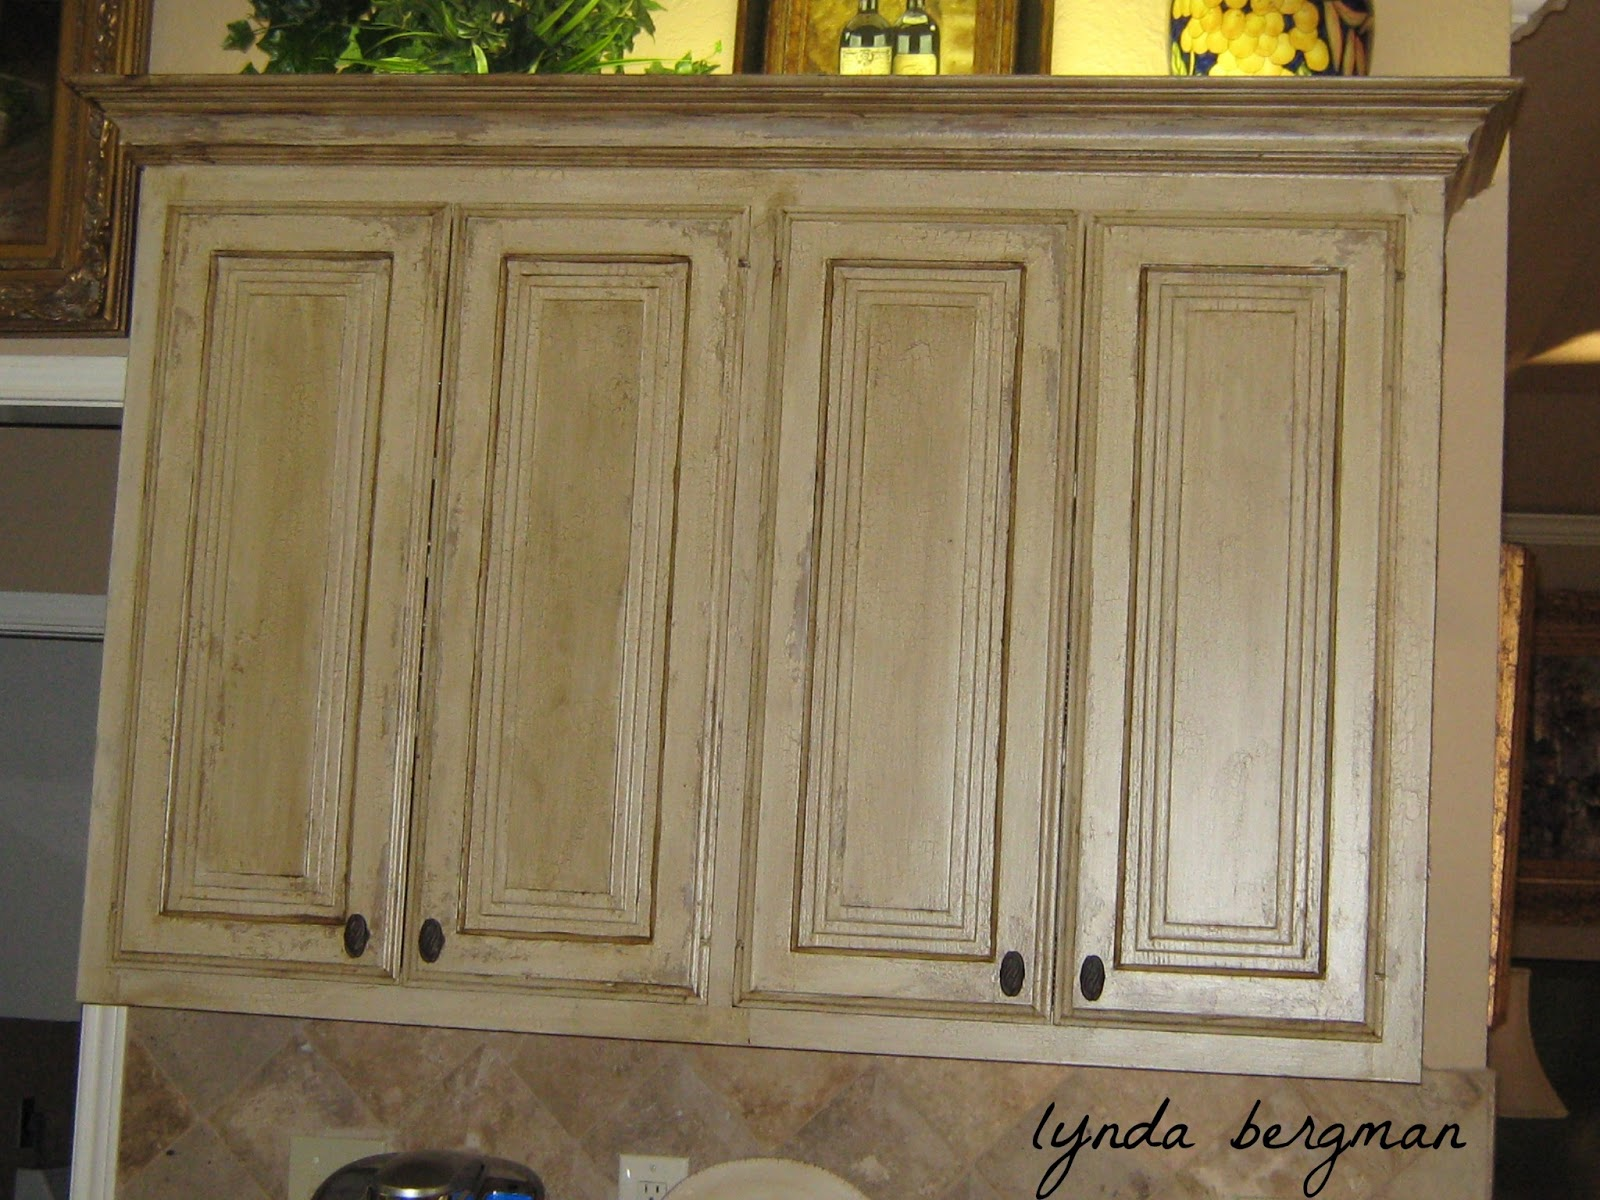 Lynda bergman decorative artisan may 2012 for Antiquing painted kitchen cabinets